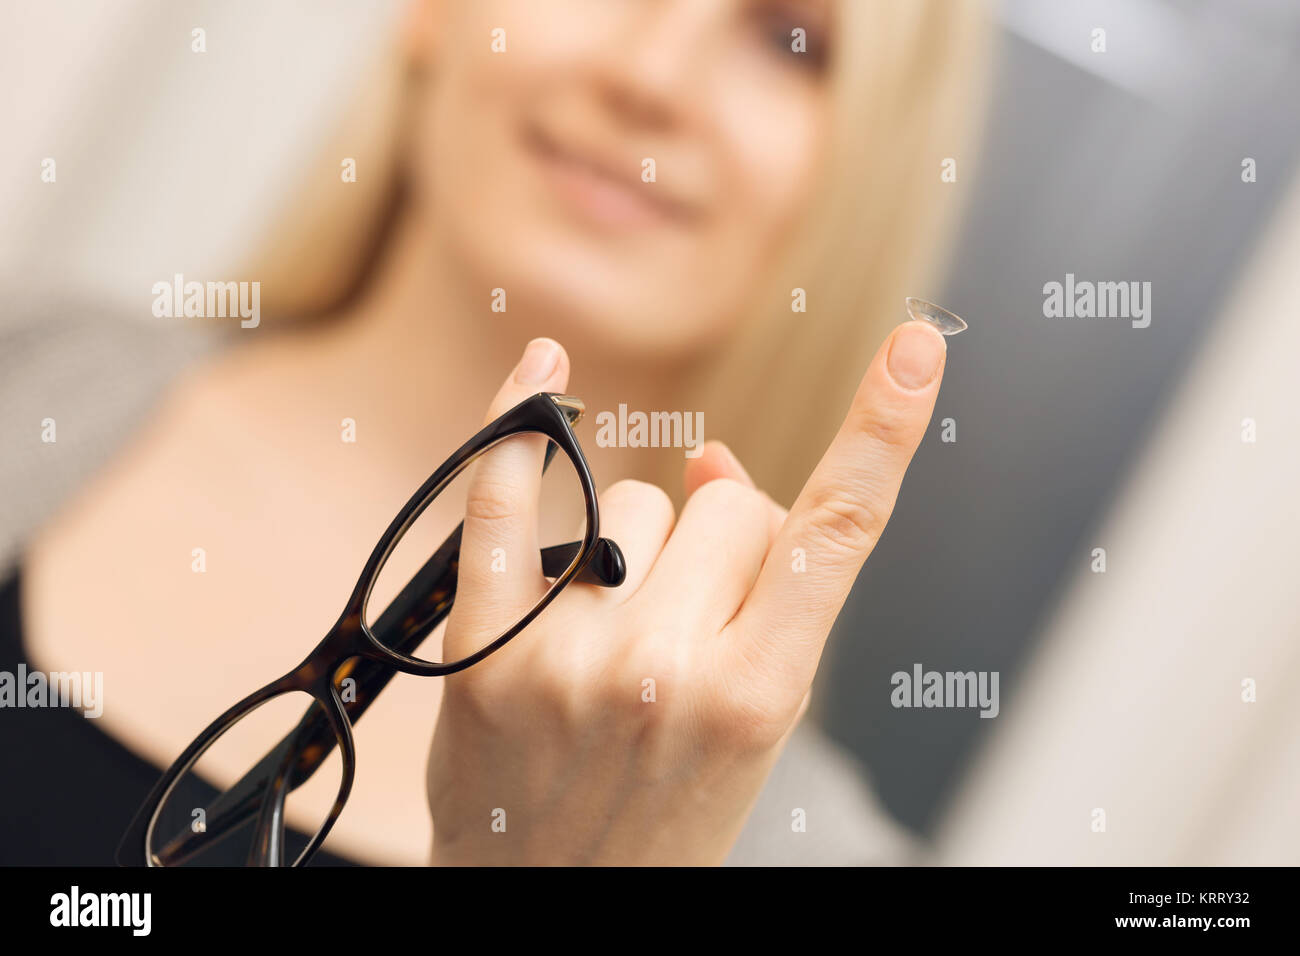 eye care - choice between glasses and contacts - Stock Image